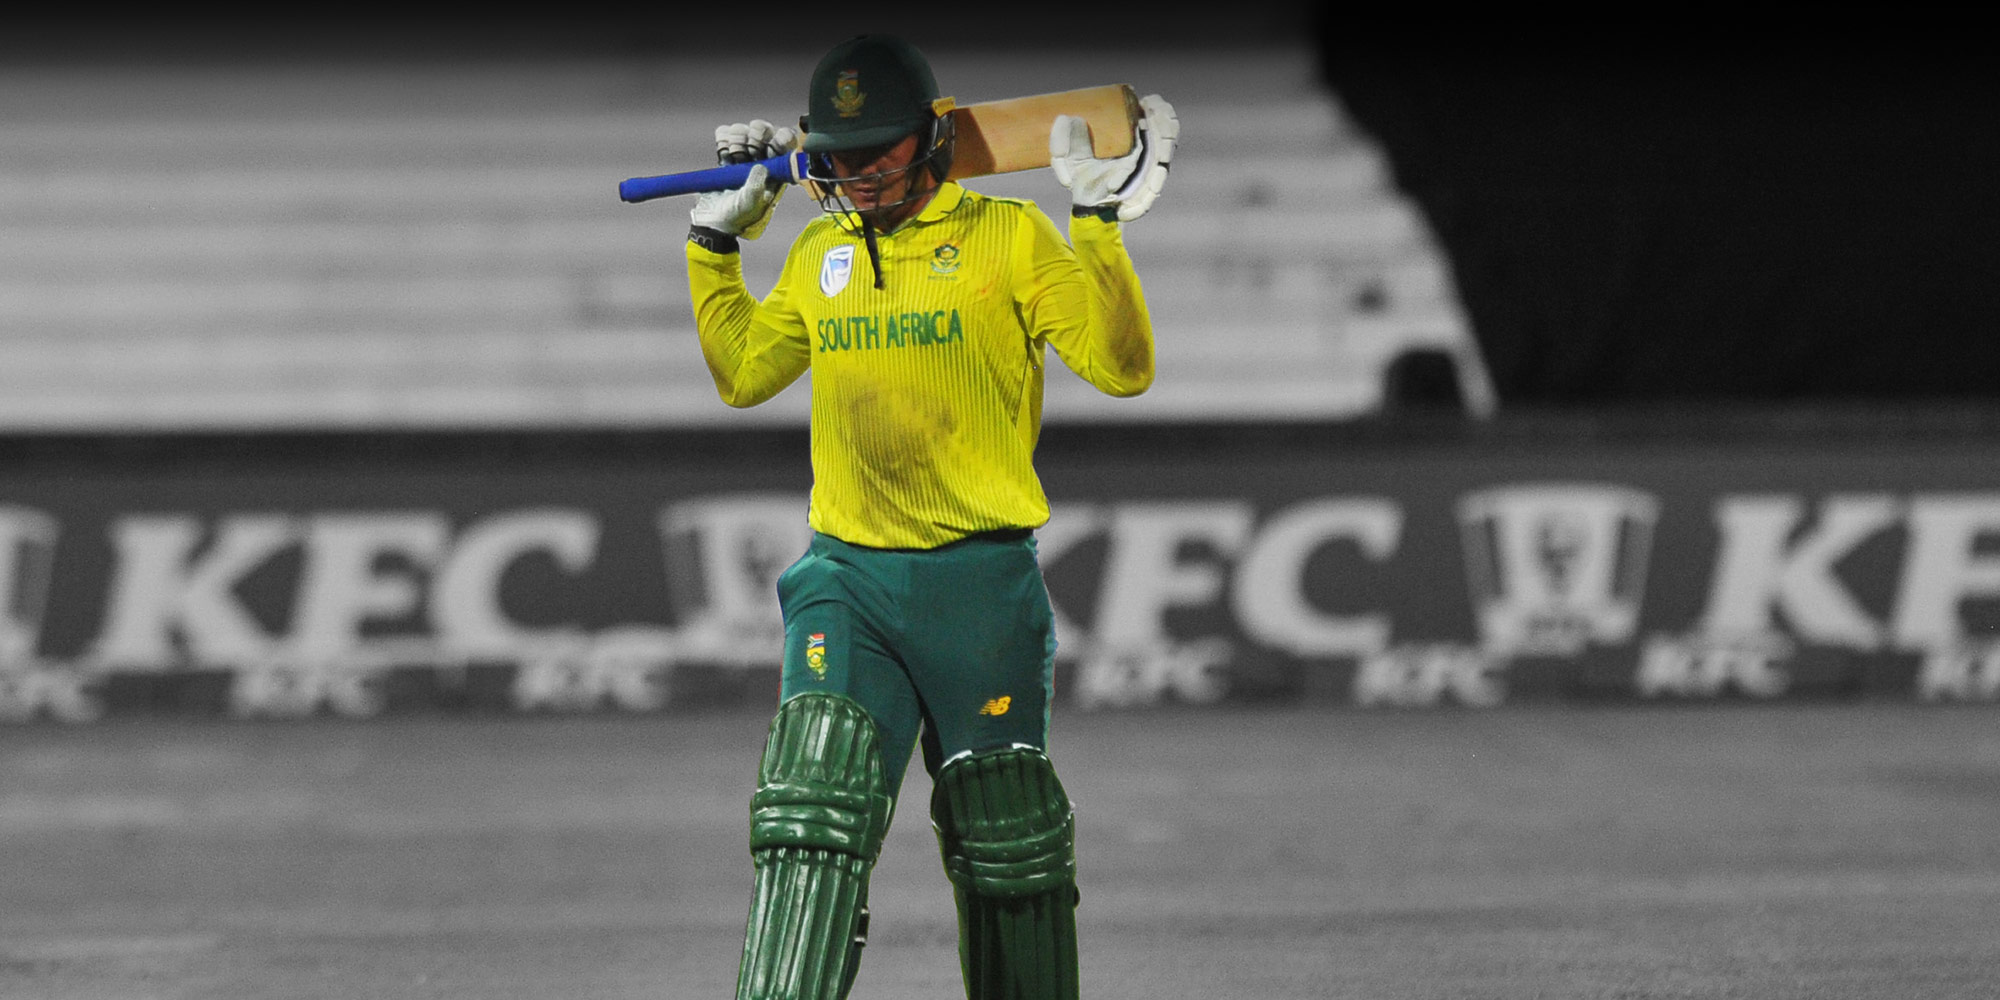 Covid-19 Allows Cricket a Chance for Reflection and Change